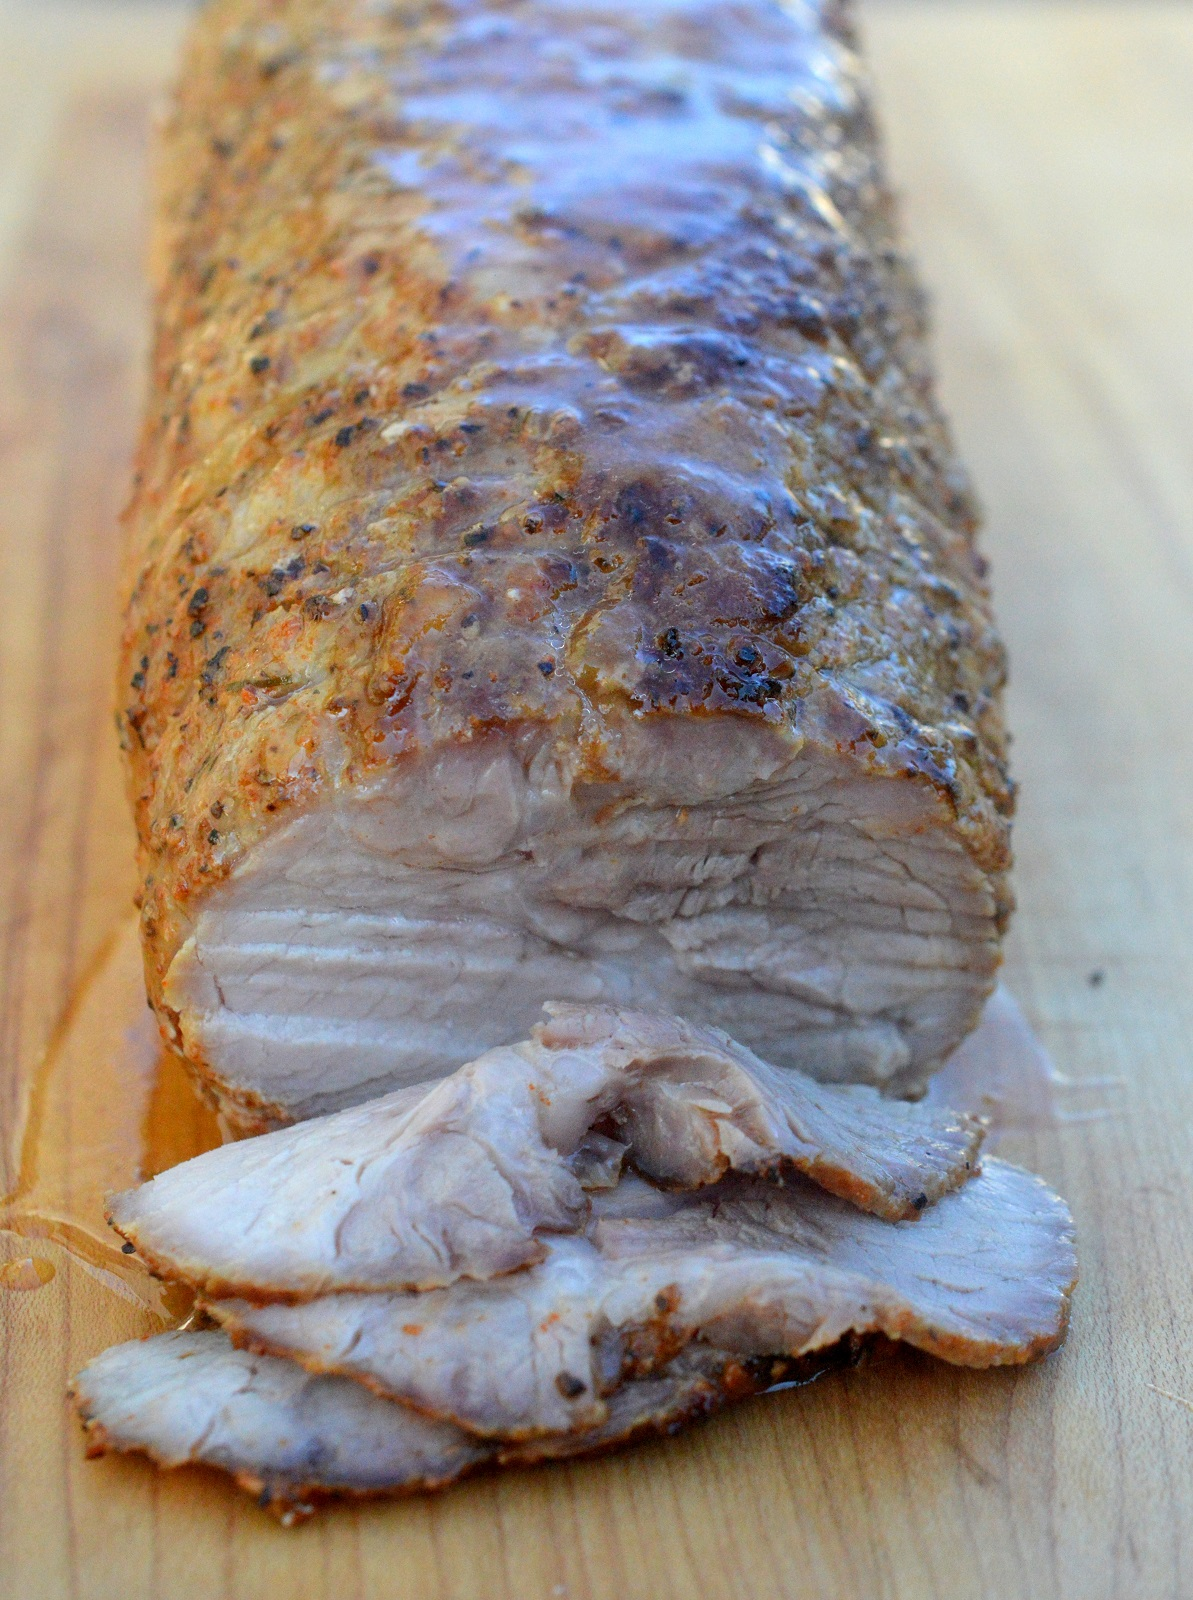 The pork is rested from the previous day's roasting and ready for slicing to make a Philly Roast Pork Sandwich